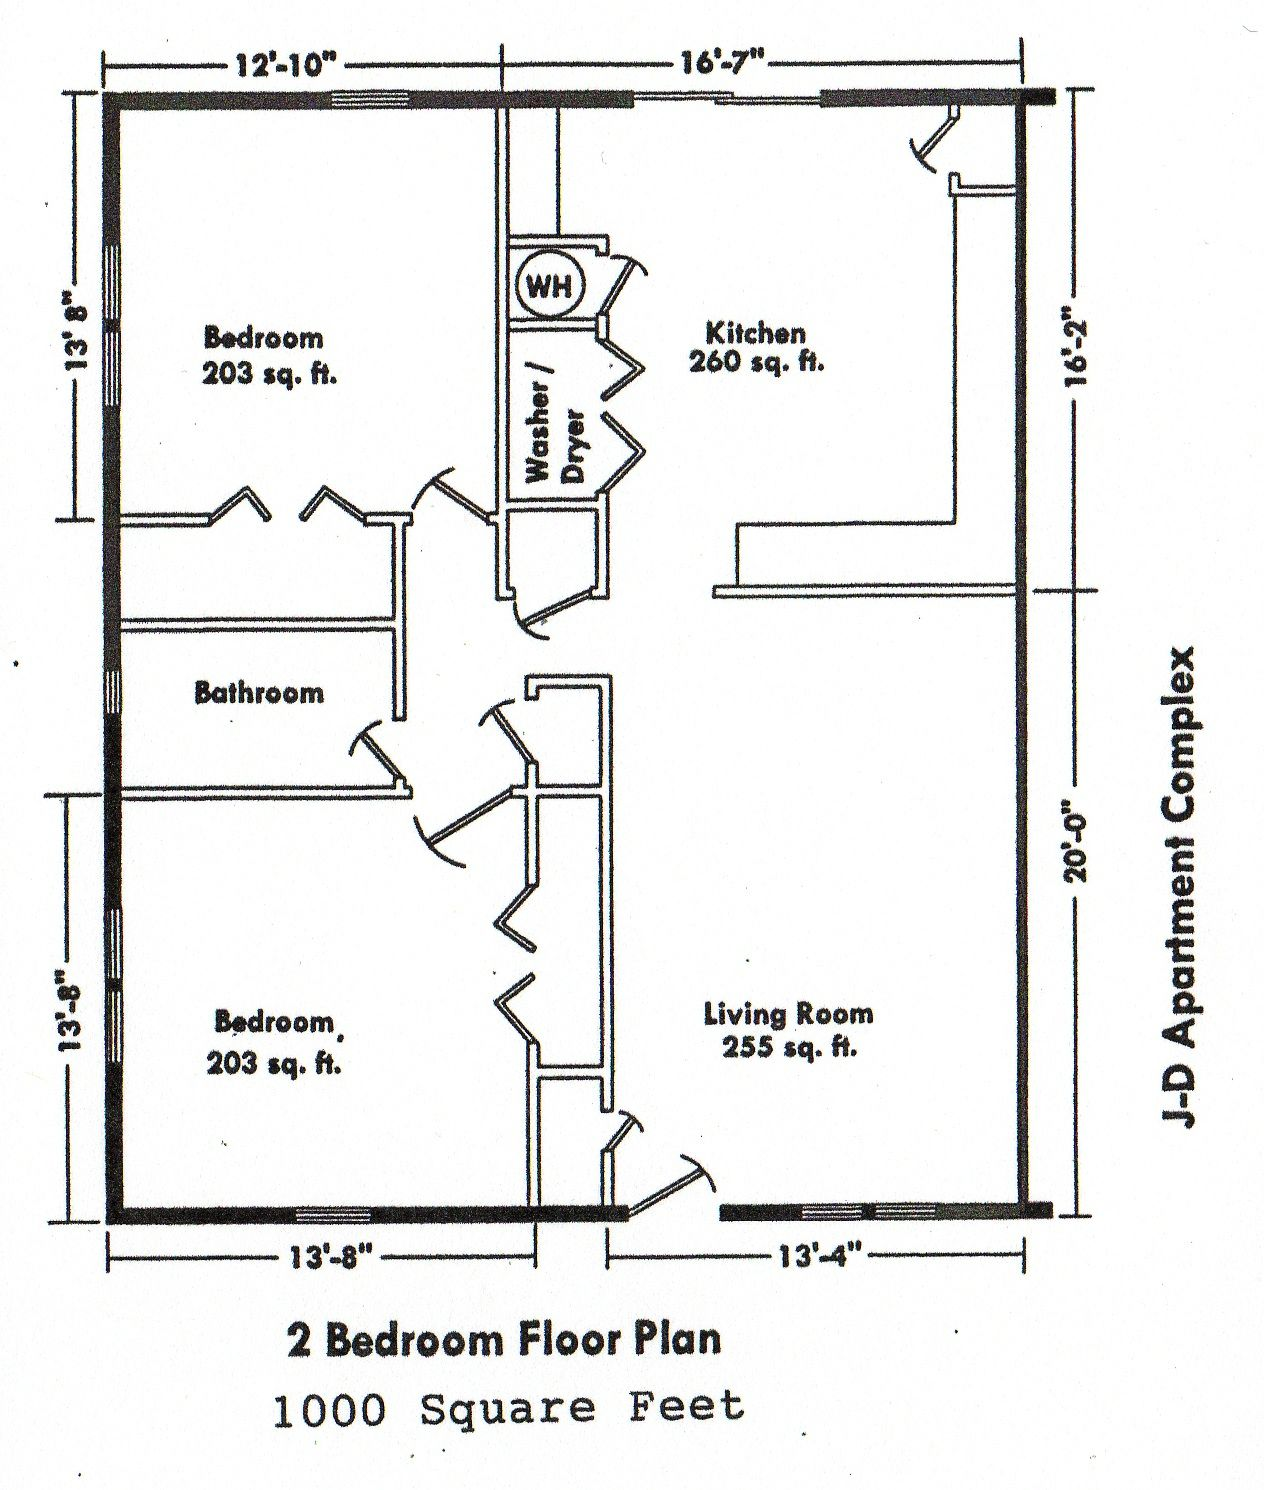 Small House Floor Plans 2 Bedrooms Master Bedroom Suite Home Addition Plans House Plans